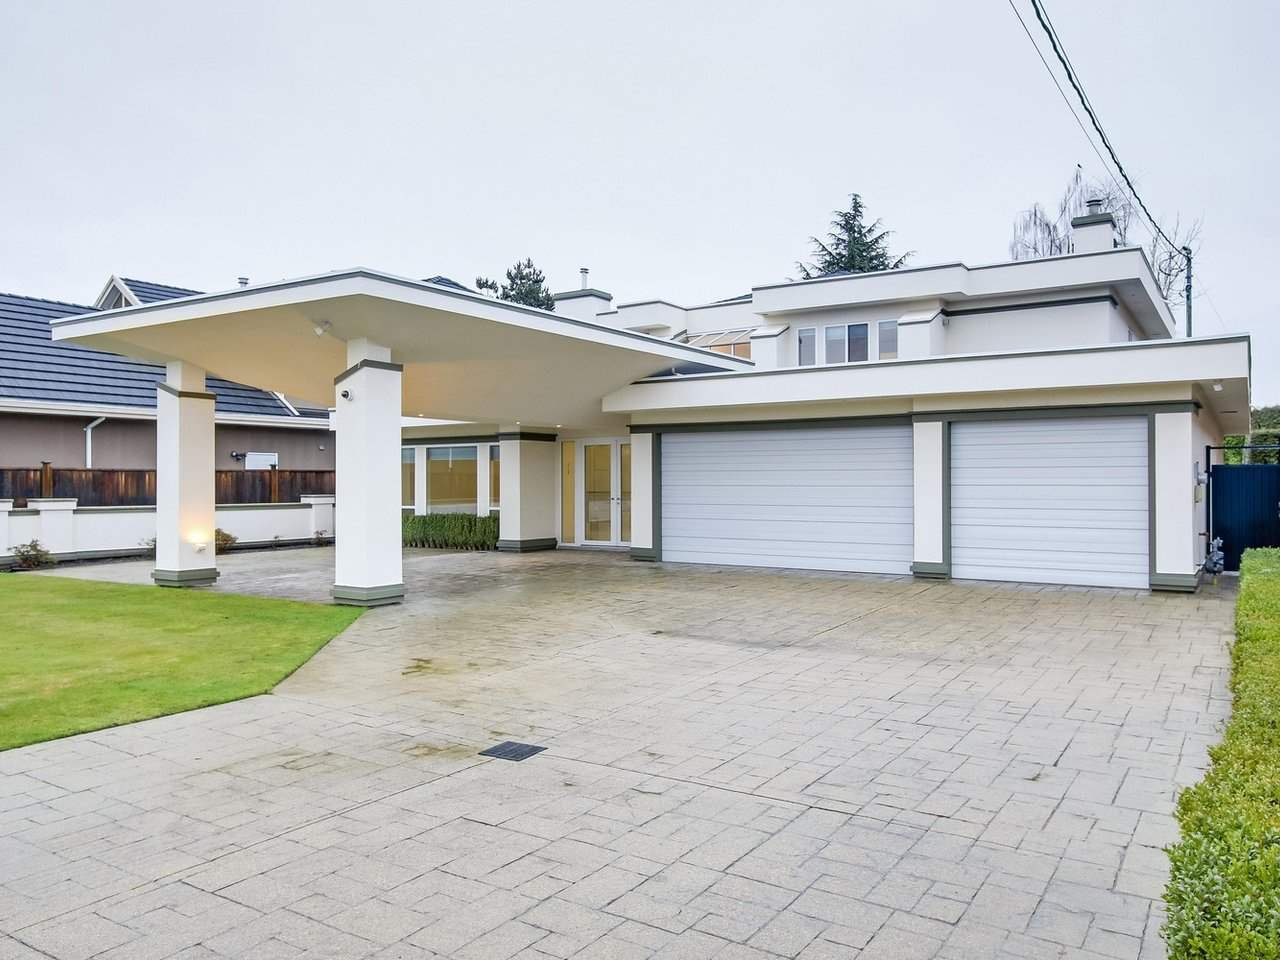 Main Photo: 6840 DONALD Road in Richmond: Granville House for sale : MLS®# R2284611